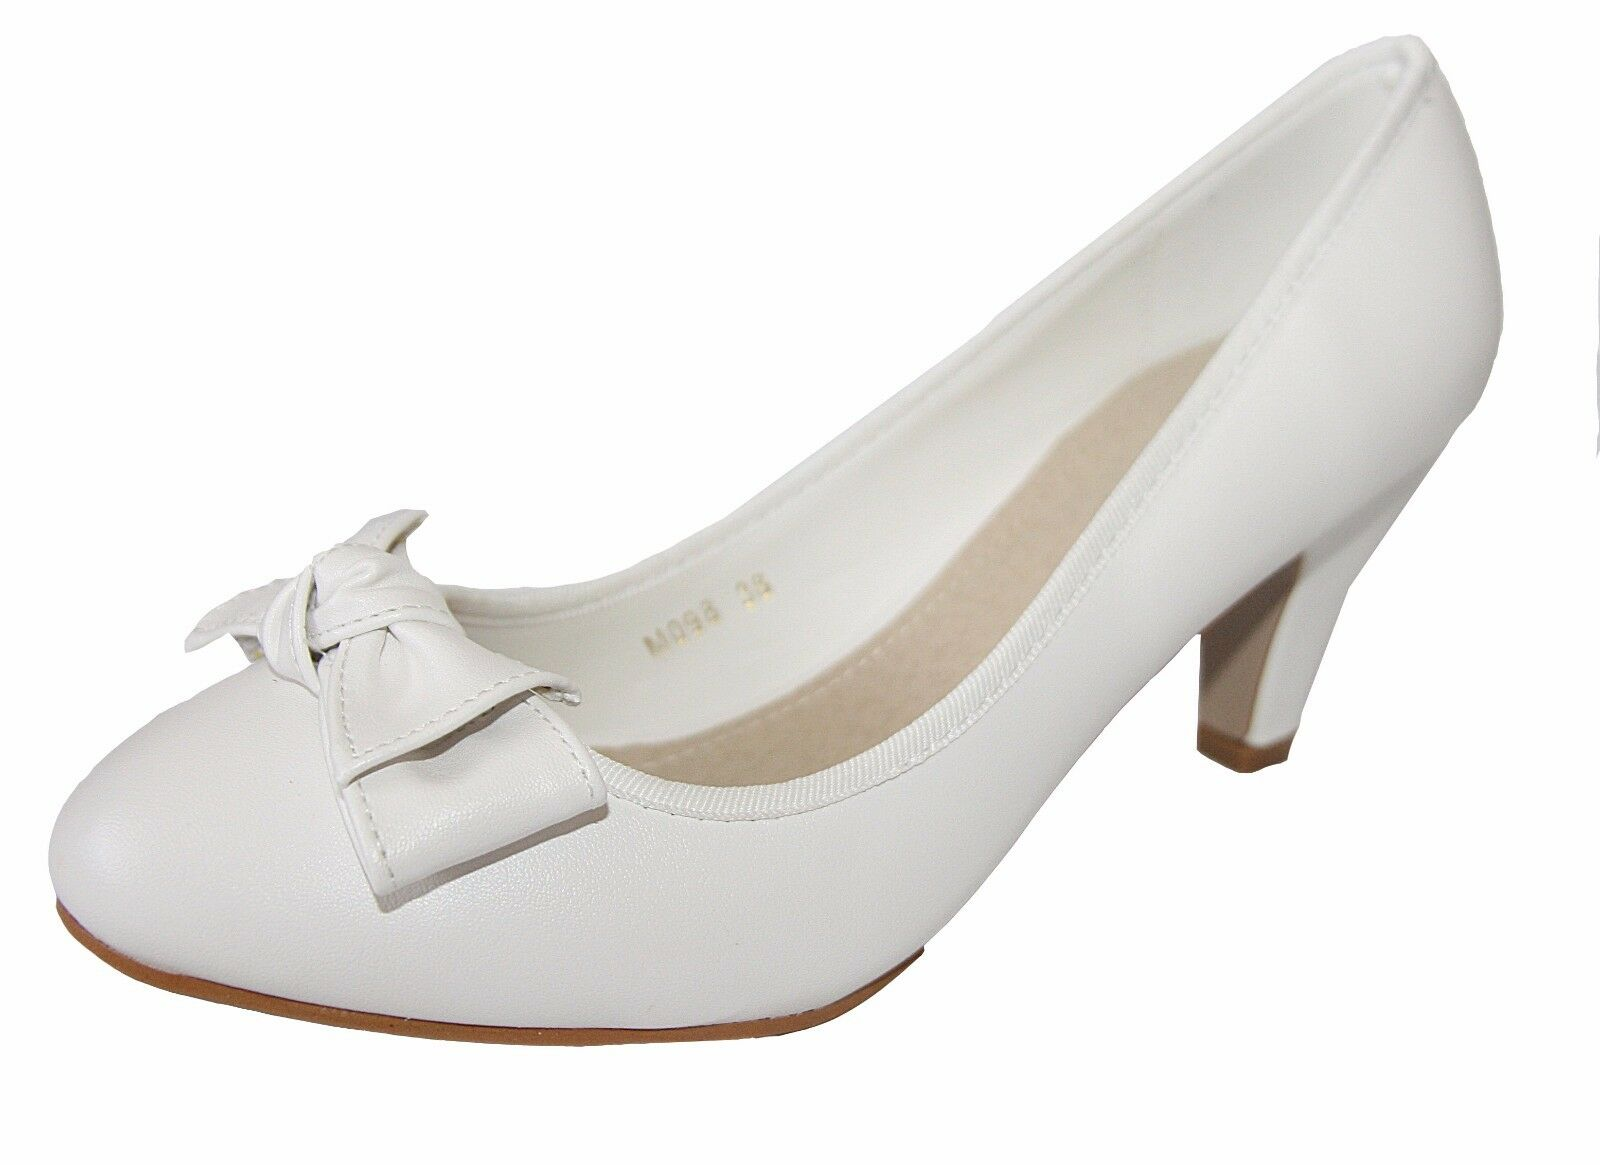 Evening Shoes Pumps Bridal Shoes Leather Look with Small Heel (S1) M098